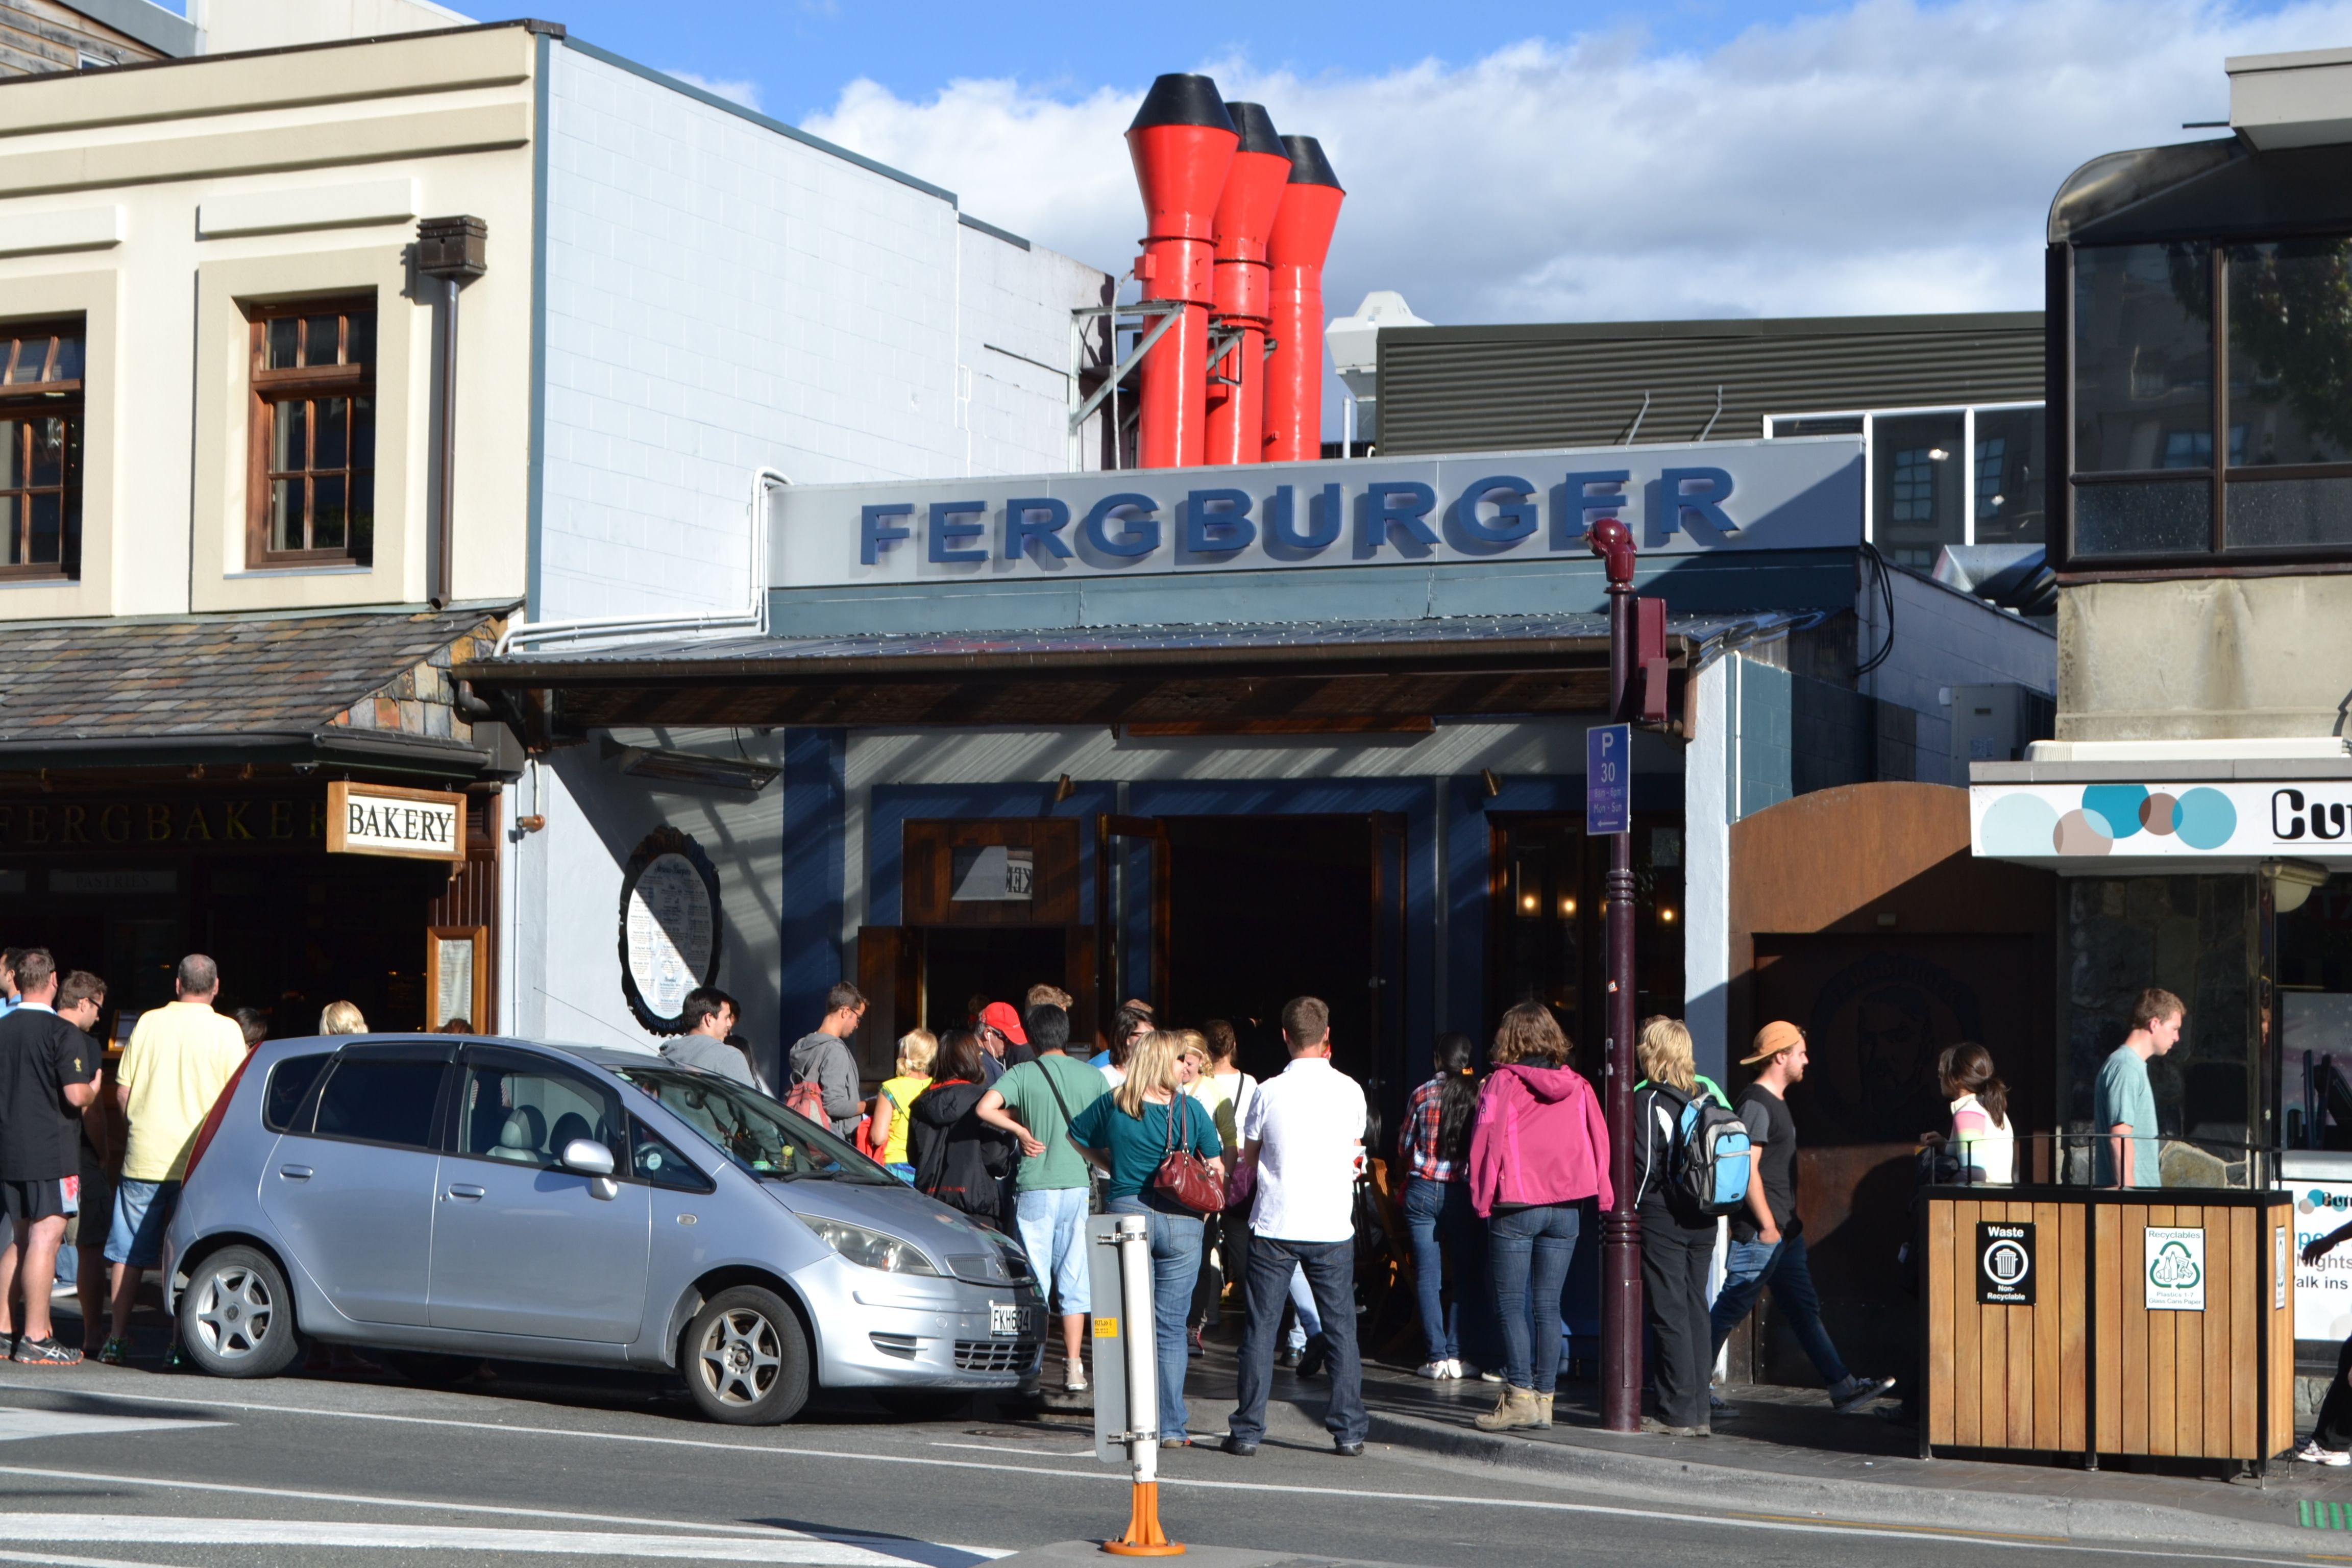 Lining up for the infamous Fergburger in Queenstown.